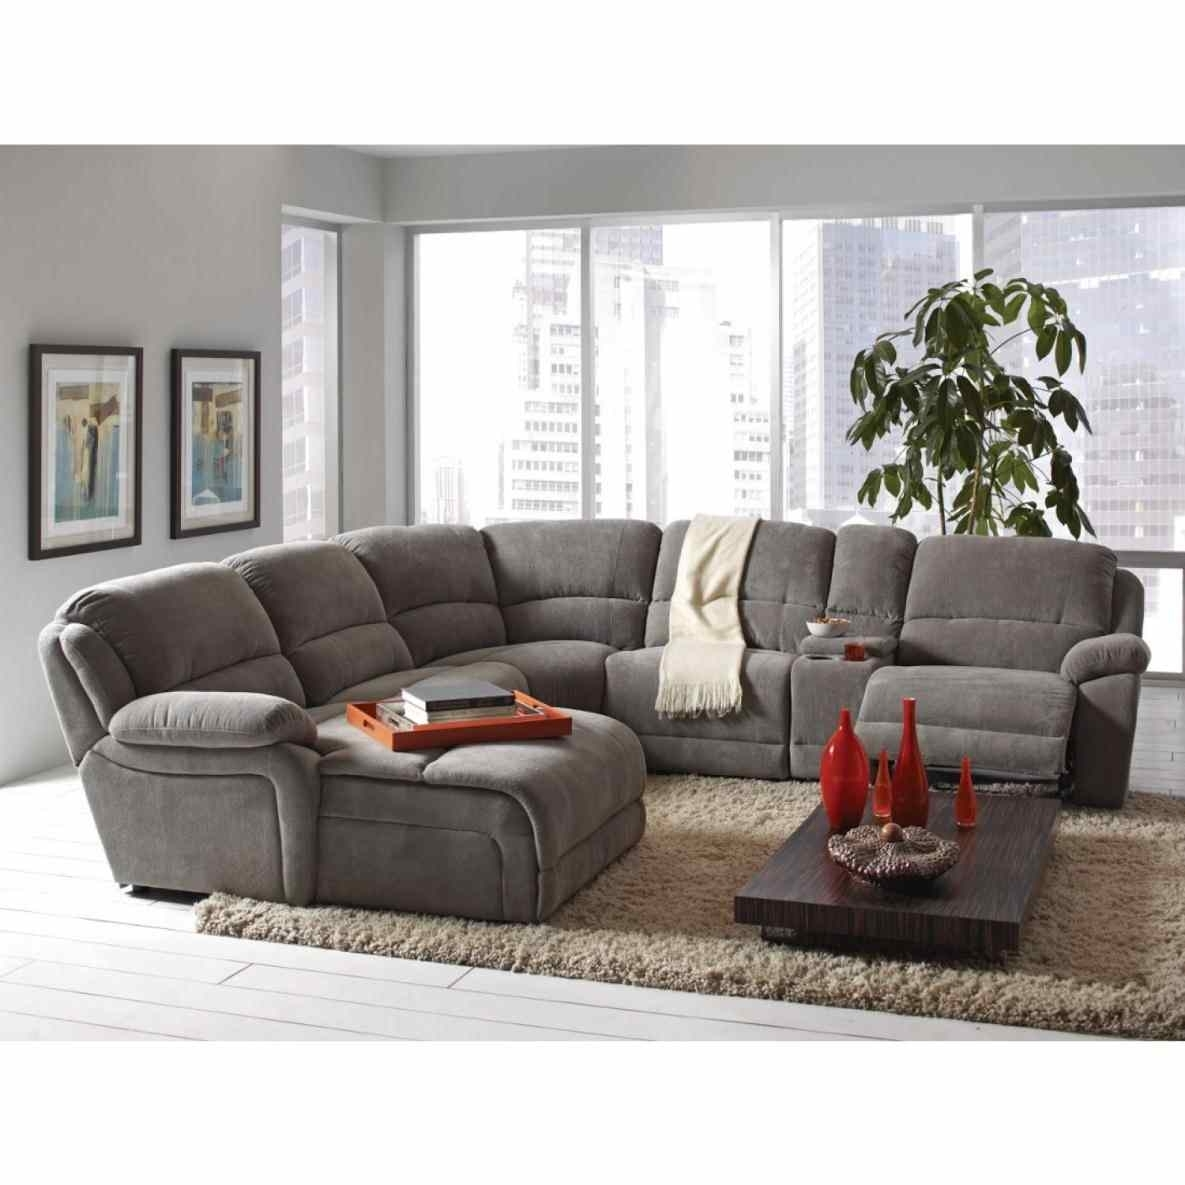 Sectional Sofa : Ashley Leather Sectional Armchair With Cup Holder 5 Throughout Jedd Fabric Reclining Sectional Sofas (View 5 of 10)